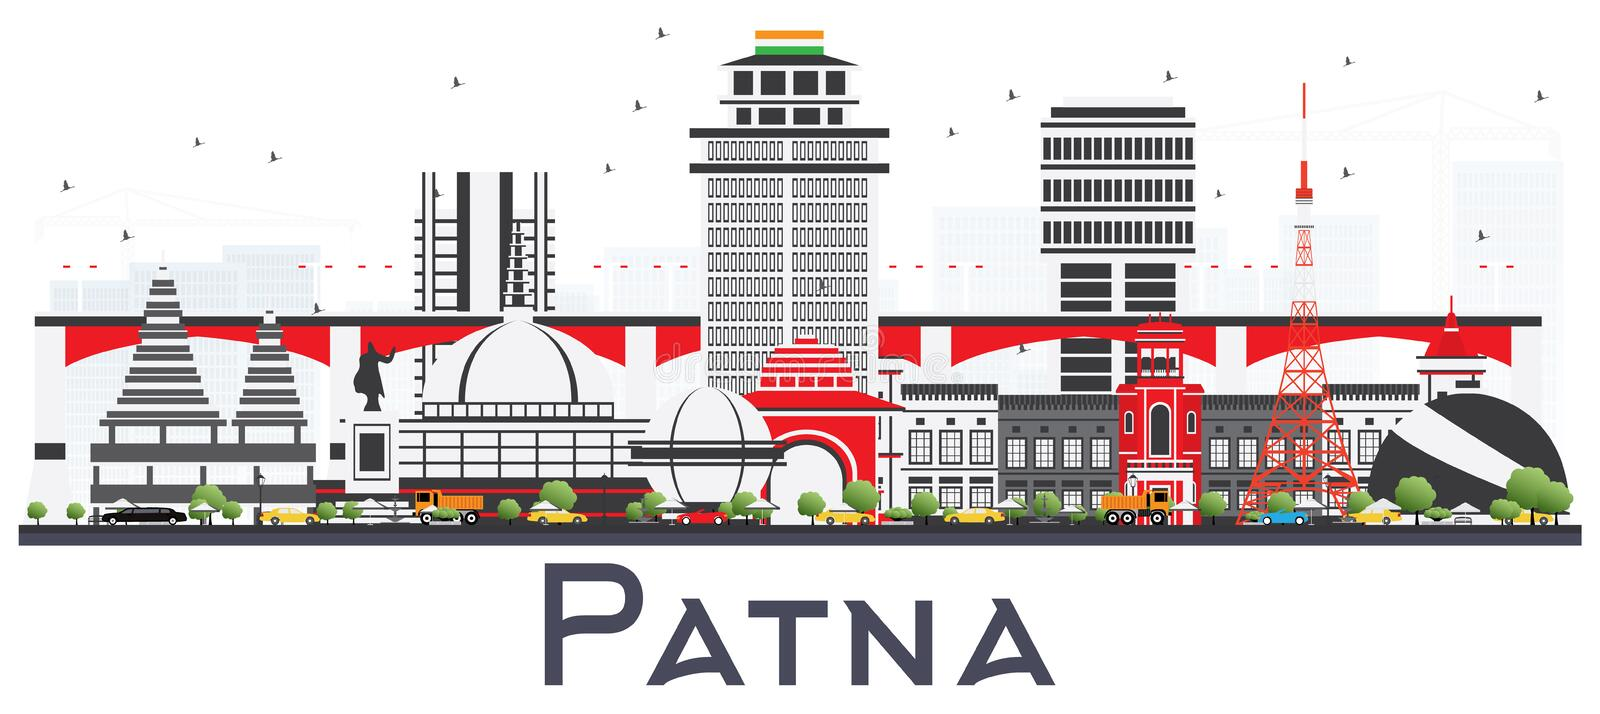 Patna India City Skyline with Gray Buildings Isolated on White. Vector Illustration. Business Travel and Tourism Concept with Modern Architecture. Patna stock illustration